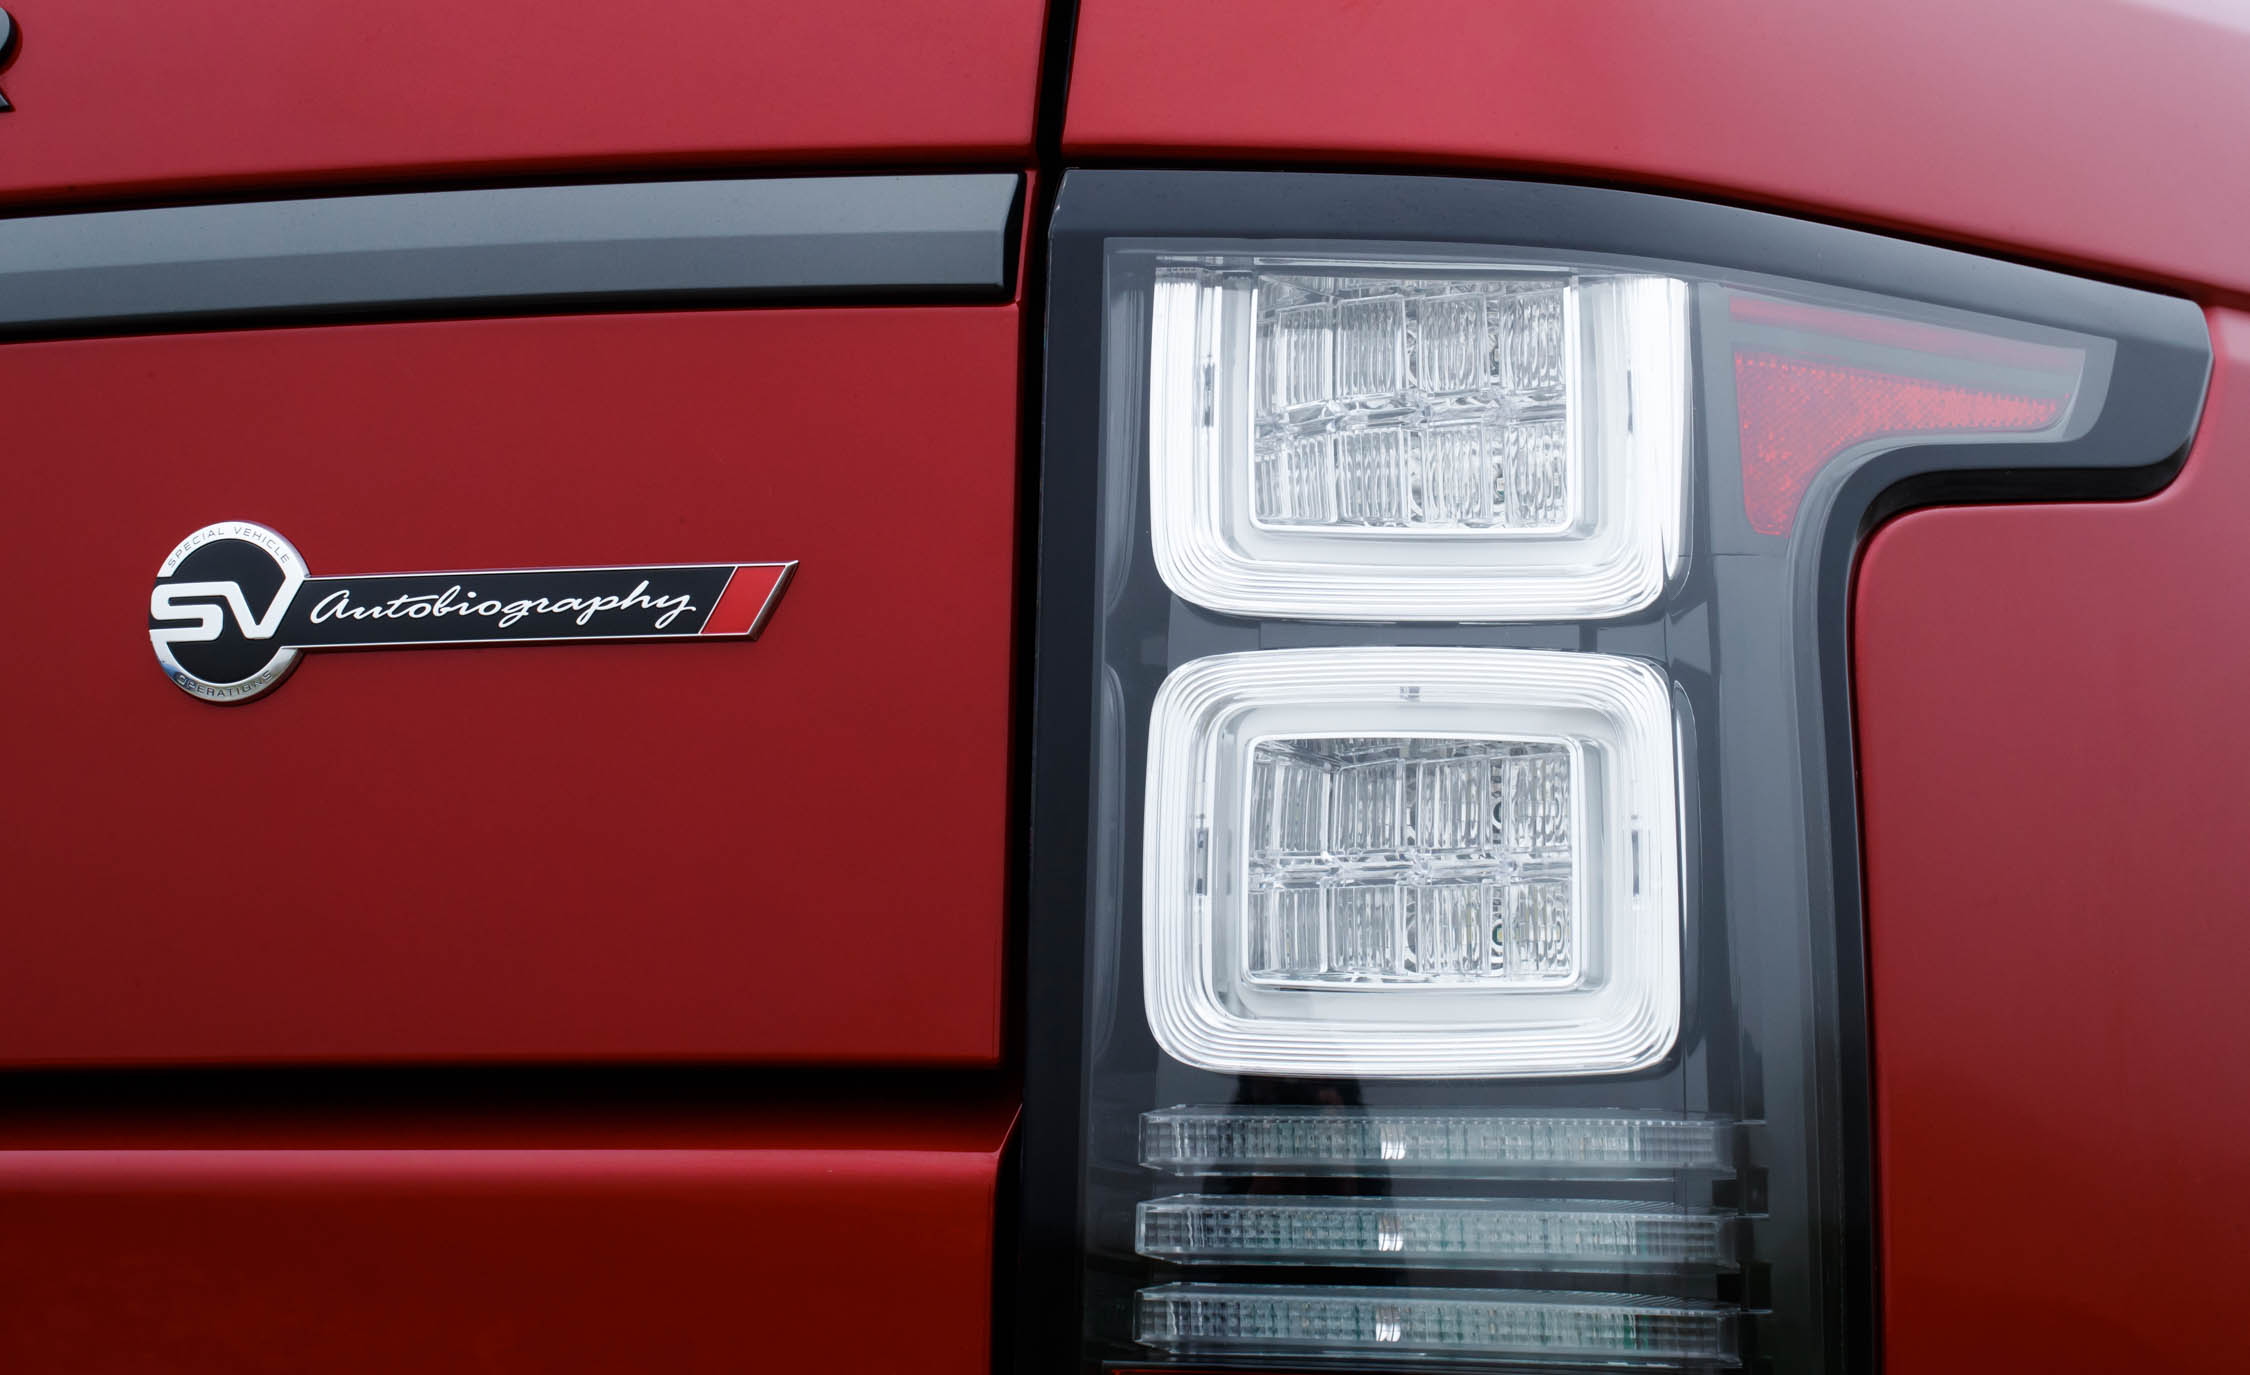 2017 Land Rover Range Rover SVAutobiography Dynamic Red Exterior View Taillight (Photo 13 of 24)